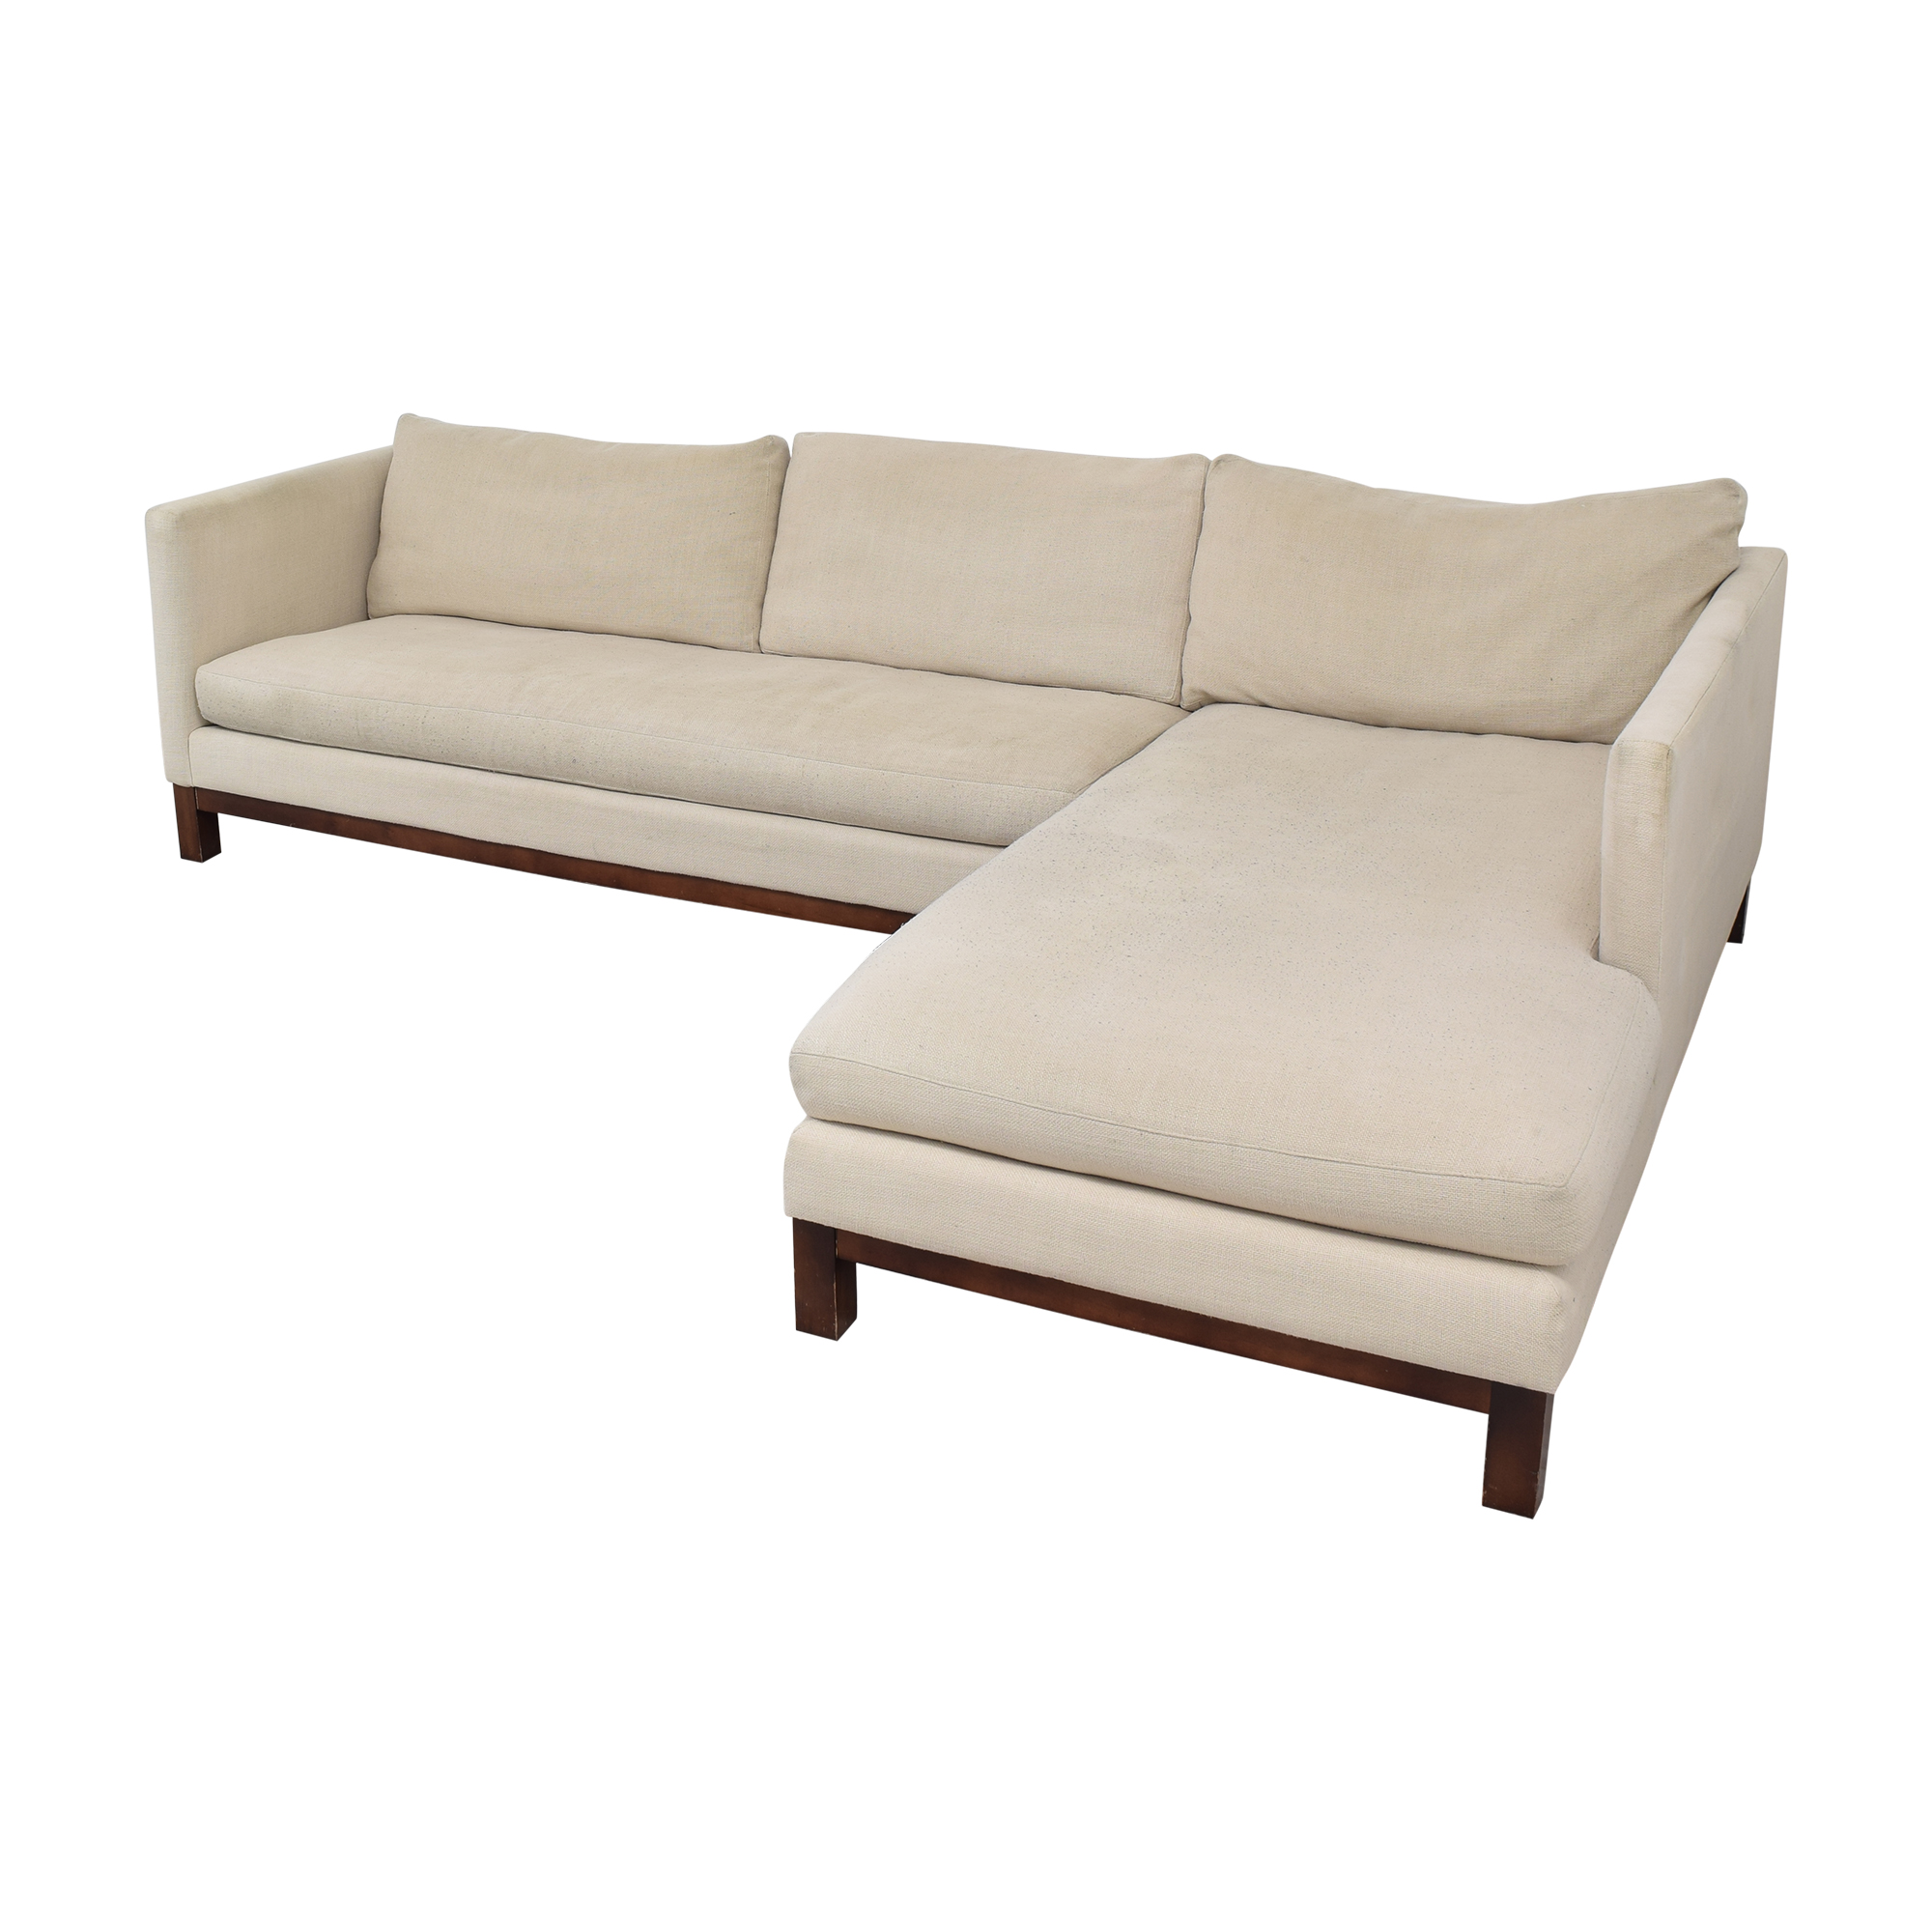 ABC Carpet & Home ABC Carpet & Home Cobble Hill Sectional Sofa ct